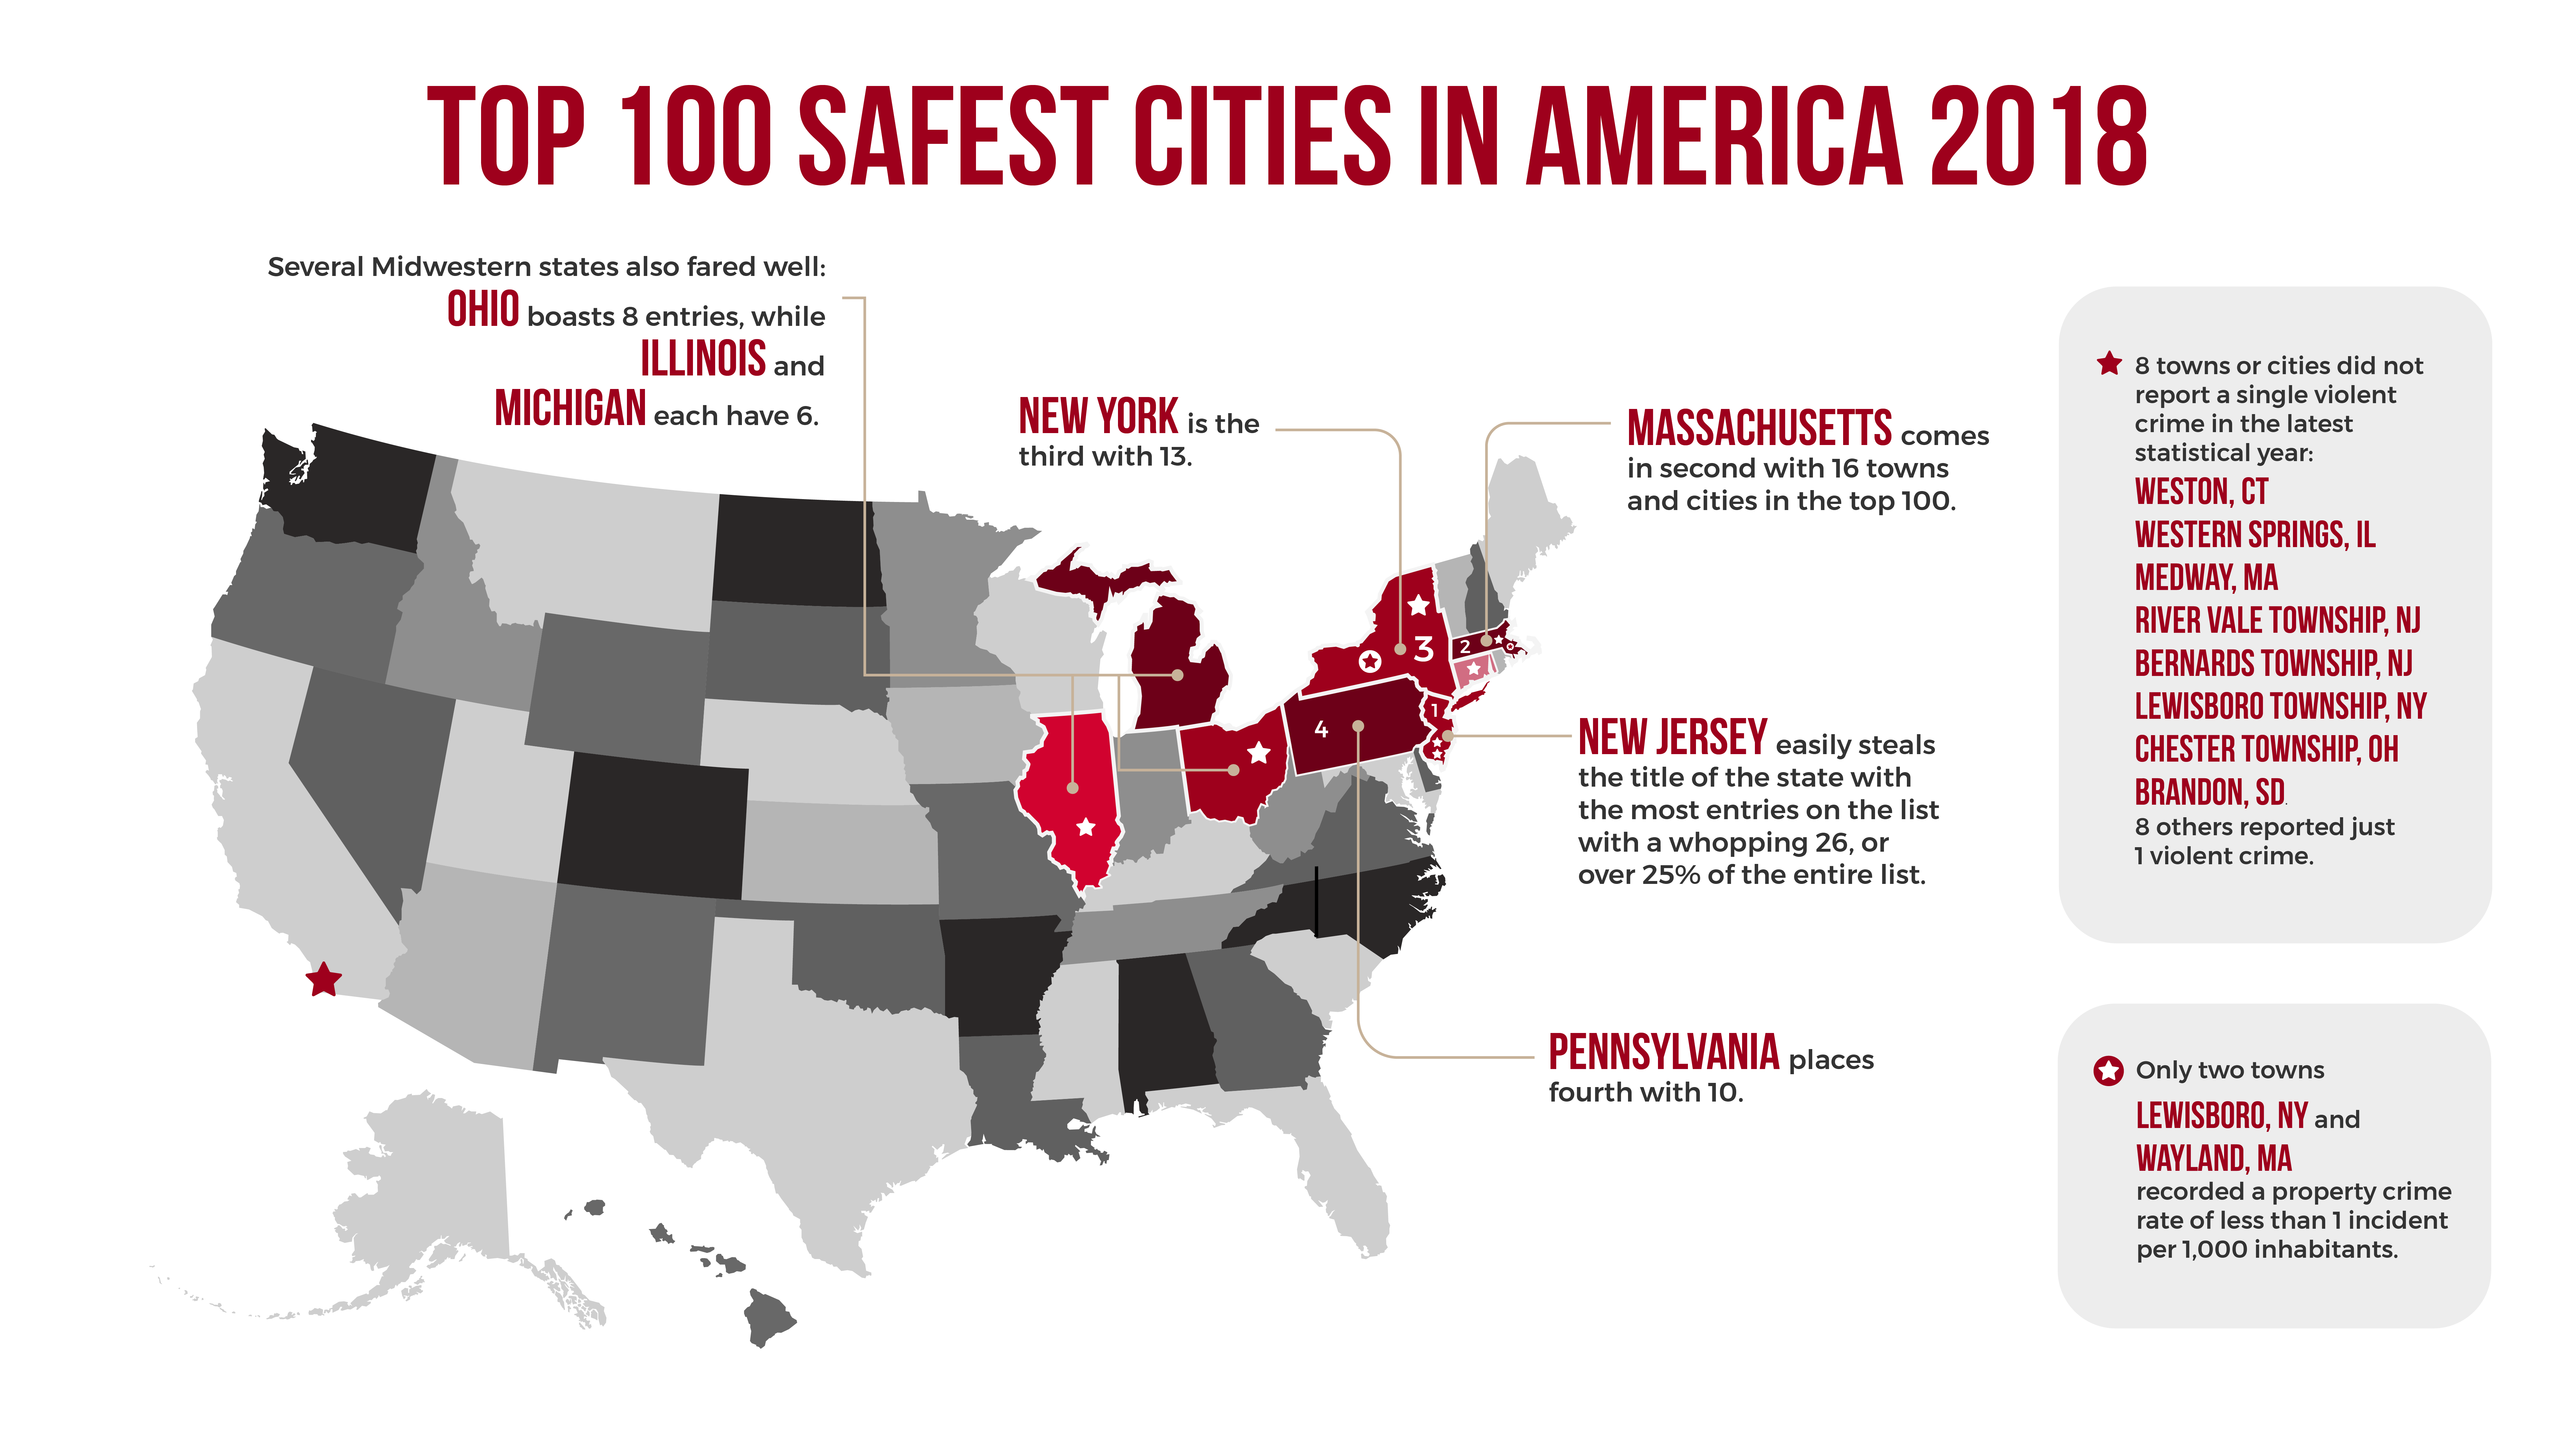 topsafestcities_america.png